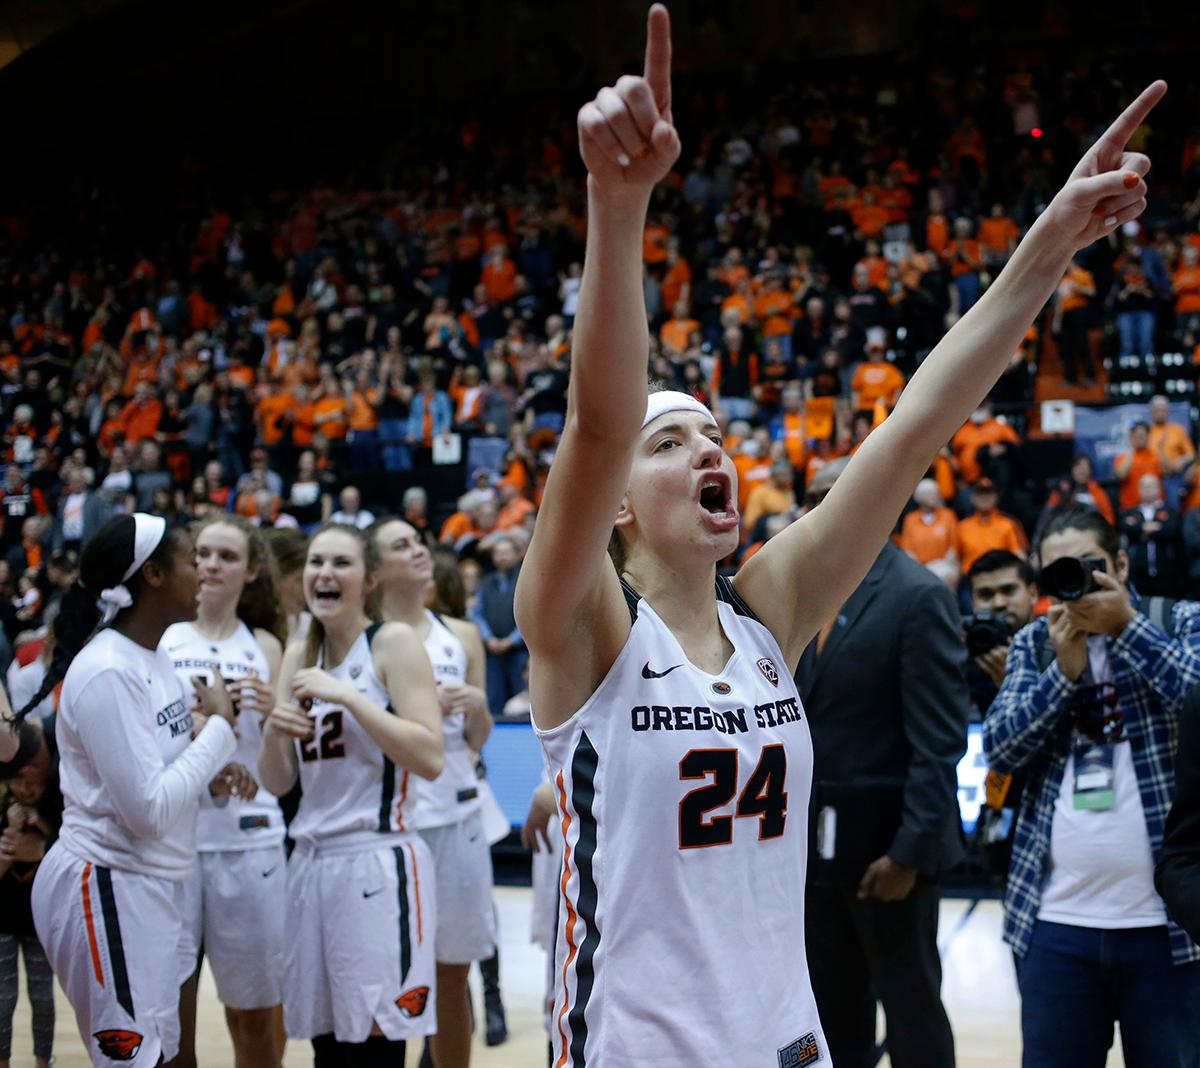 Oregon State's Sydney Wiese thanks fans after Oregon State defeated Creighton 64-52 in a second-round game in the NCAA women's college basketball tournament Sunday, March 19, 2017, in Corvallis, Ore. The game is Wiese's last in Gill Coliseum. (AP Photo/Timothy J. Gonzalez)